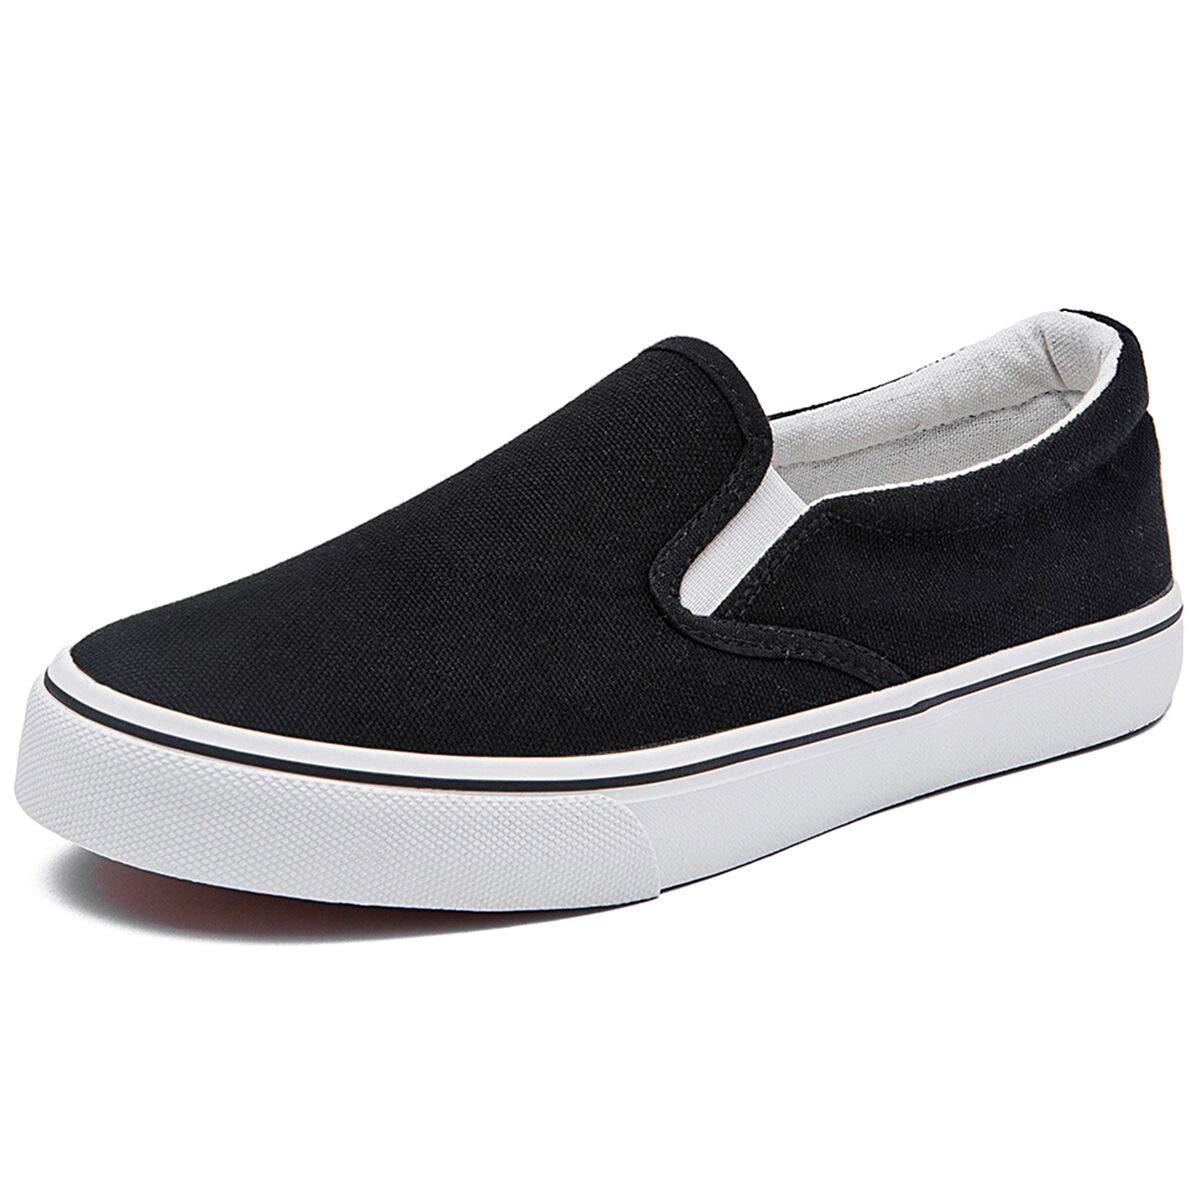 Women's Canvas Slip On Sneakers Fat Loafers Casual Shoes (US9, Black)